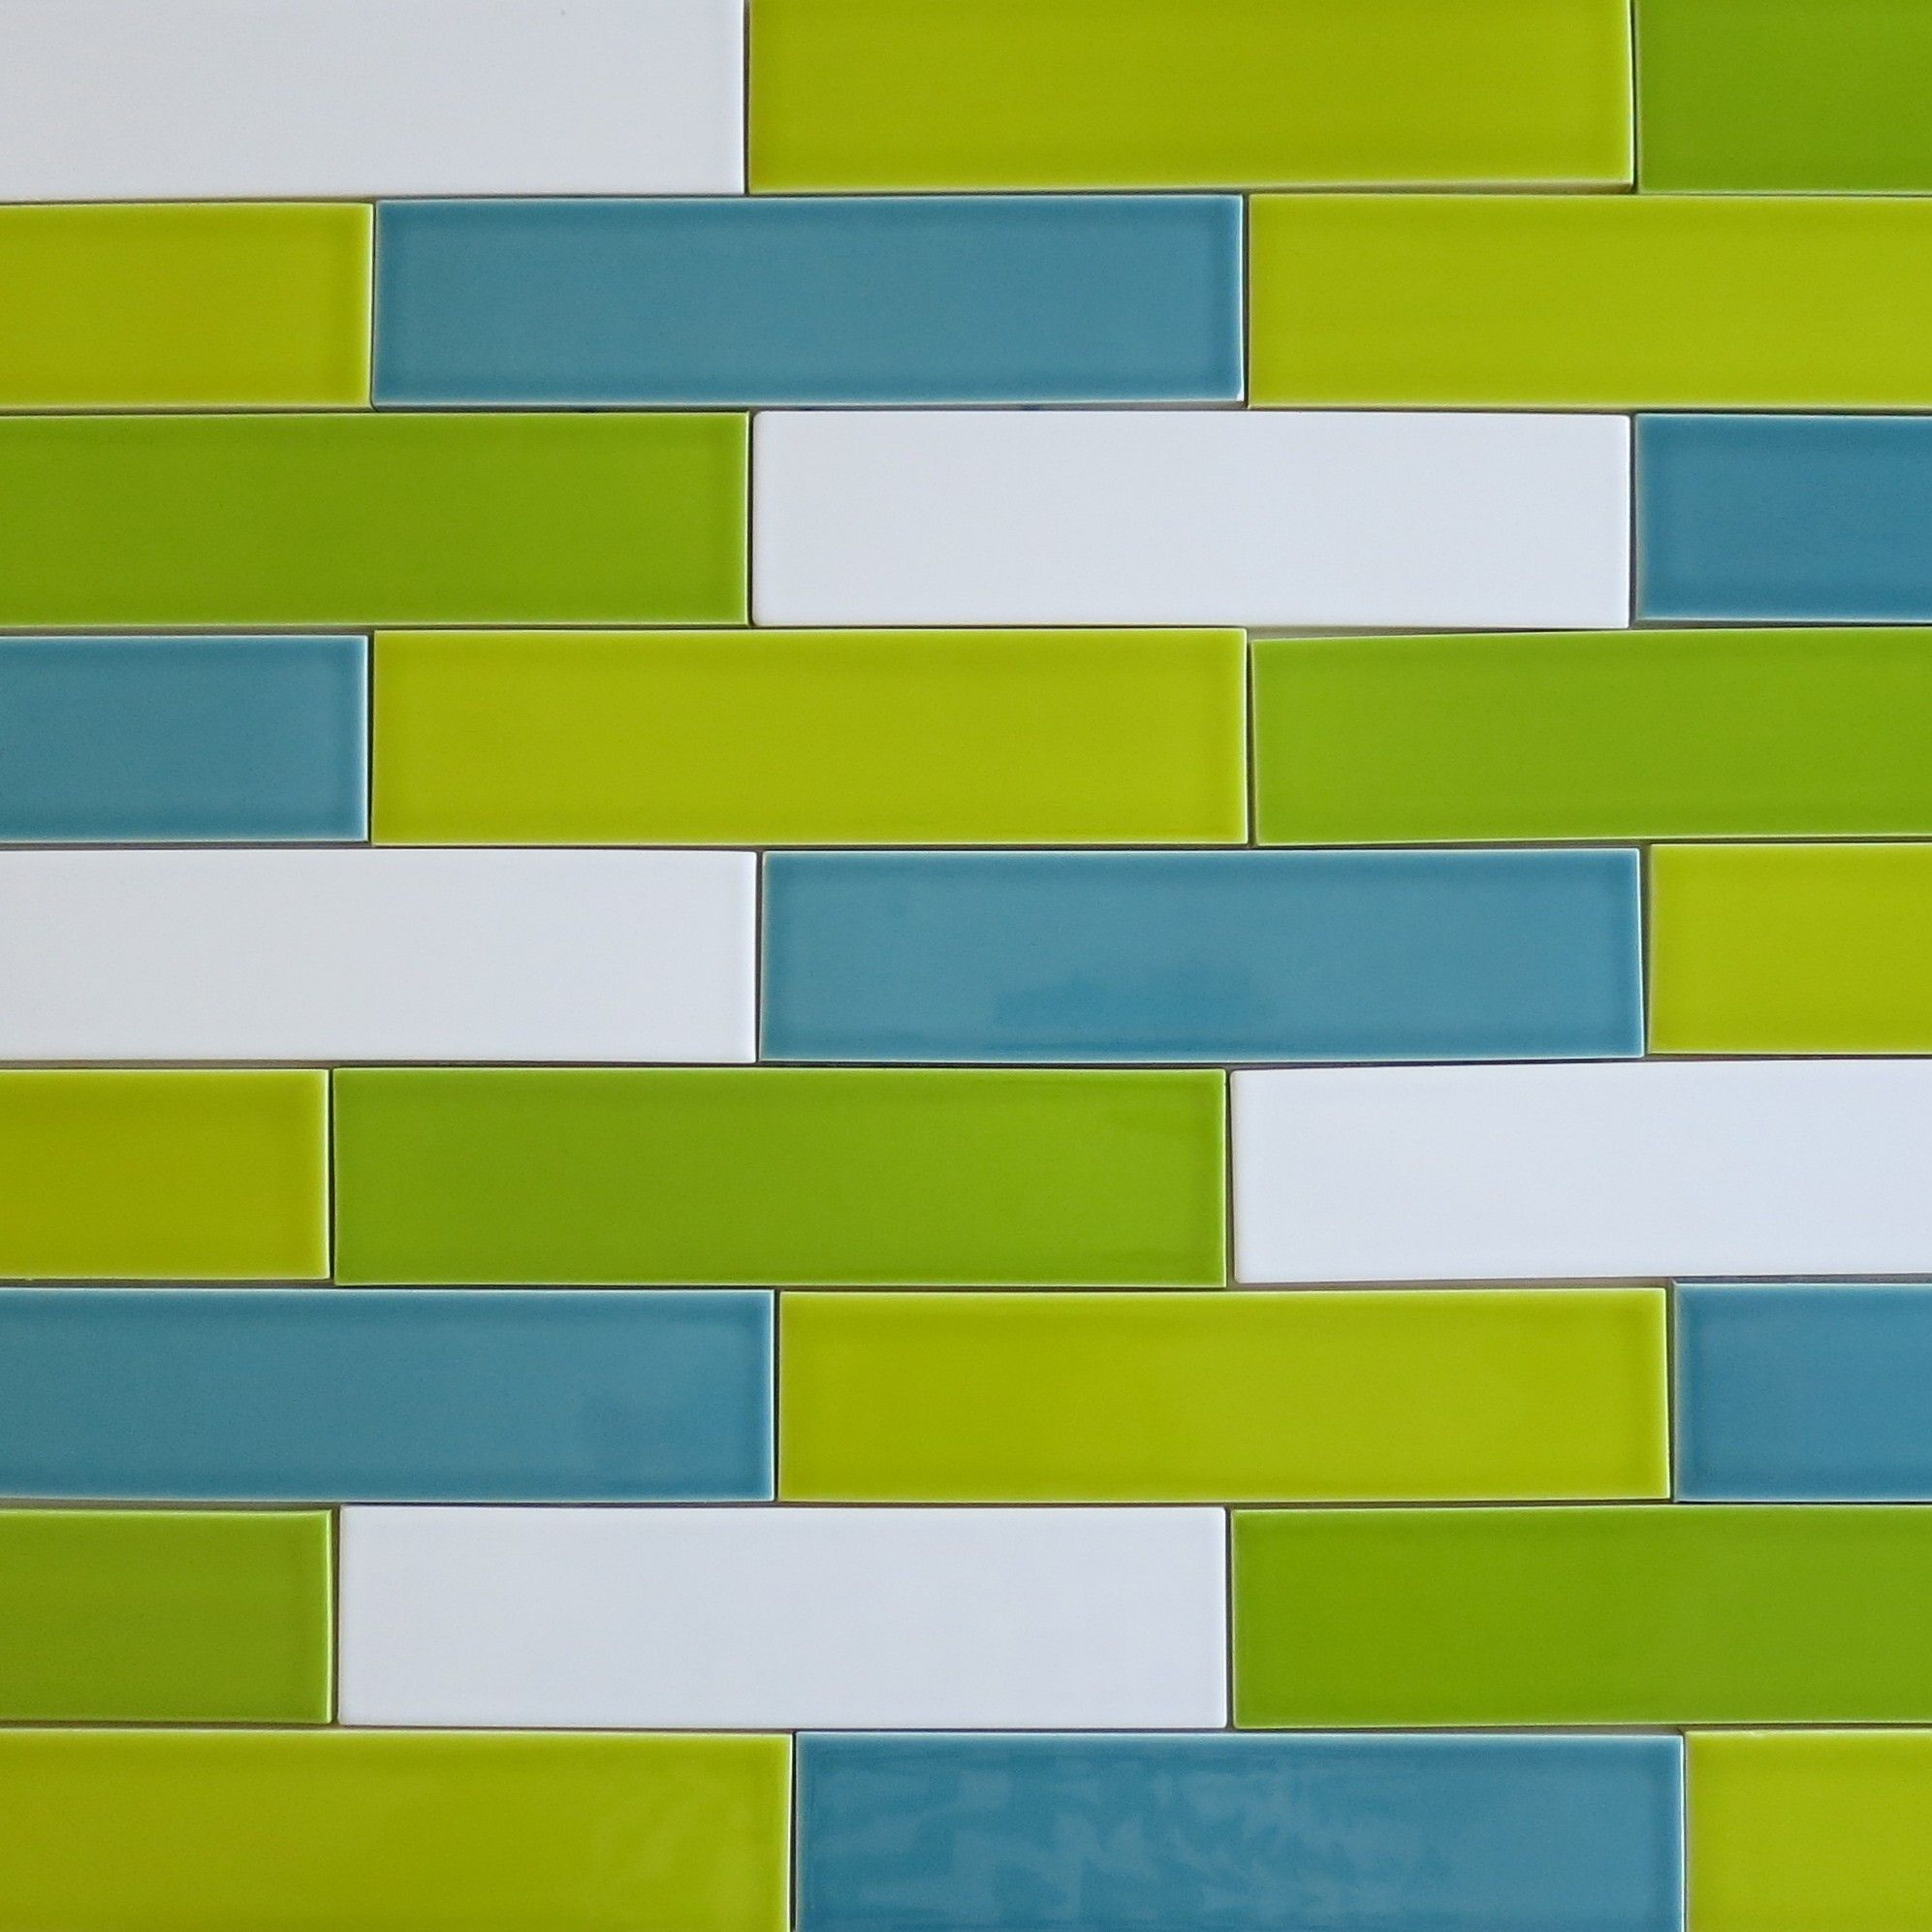 Kiln ceramic 2x8 subway tile chartreuse green multicolor kiln ceramic 2x8 subway tile chartreuse green multicolor horizontal installation close up doublecrazyfo Choice Image